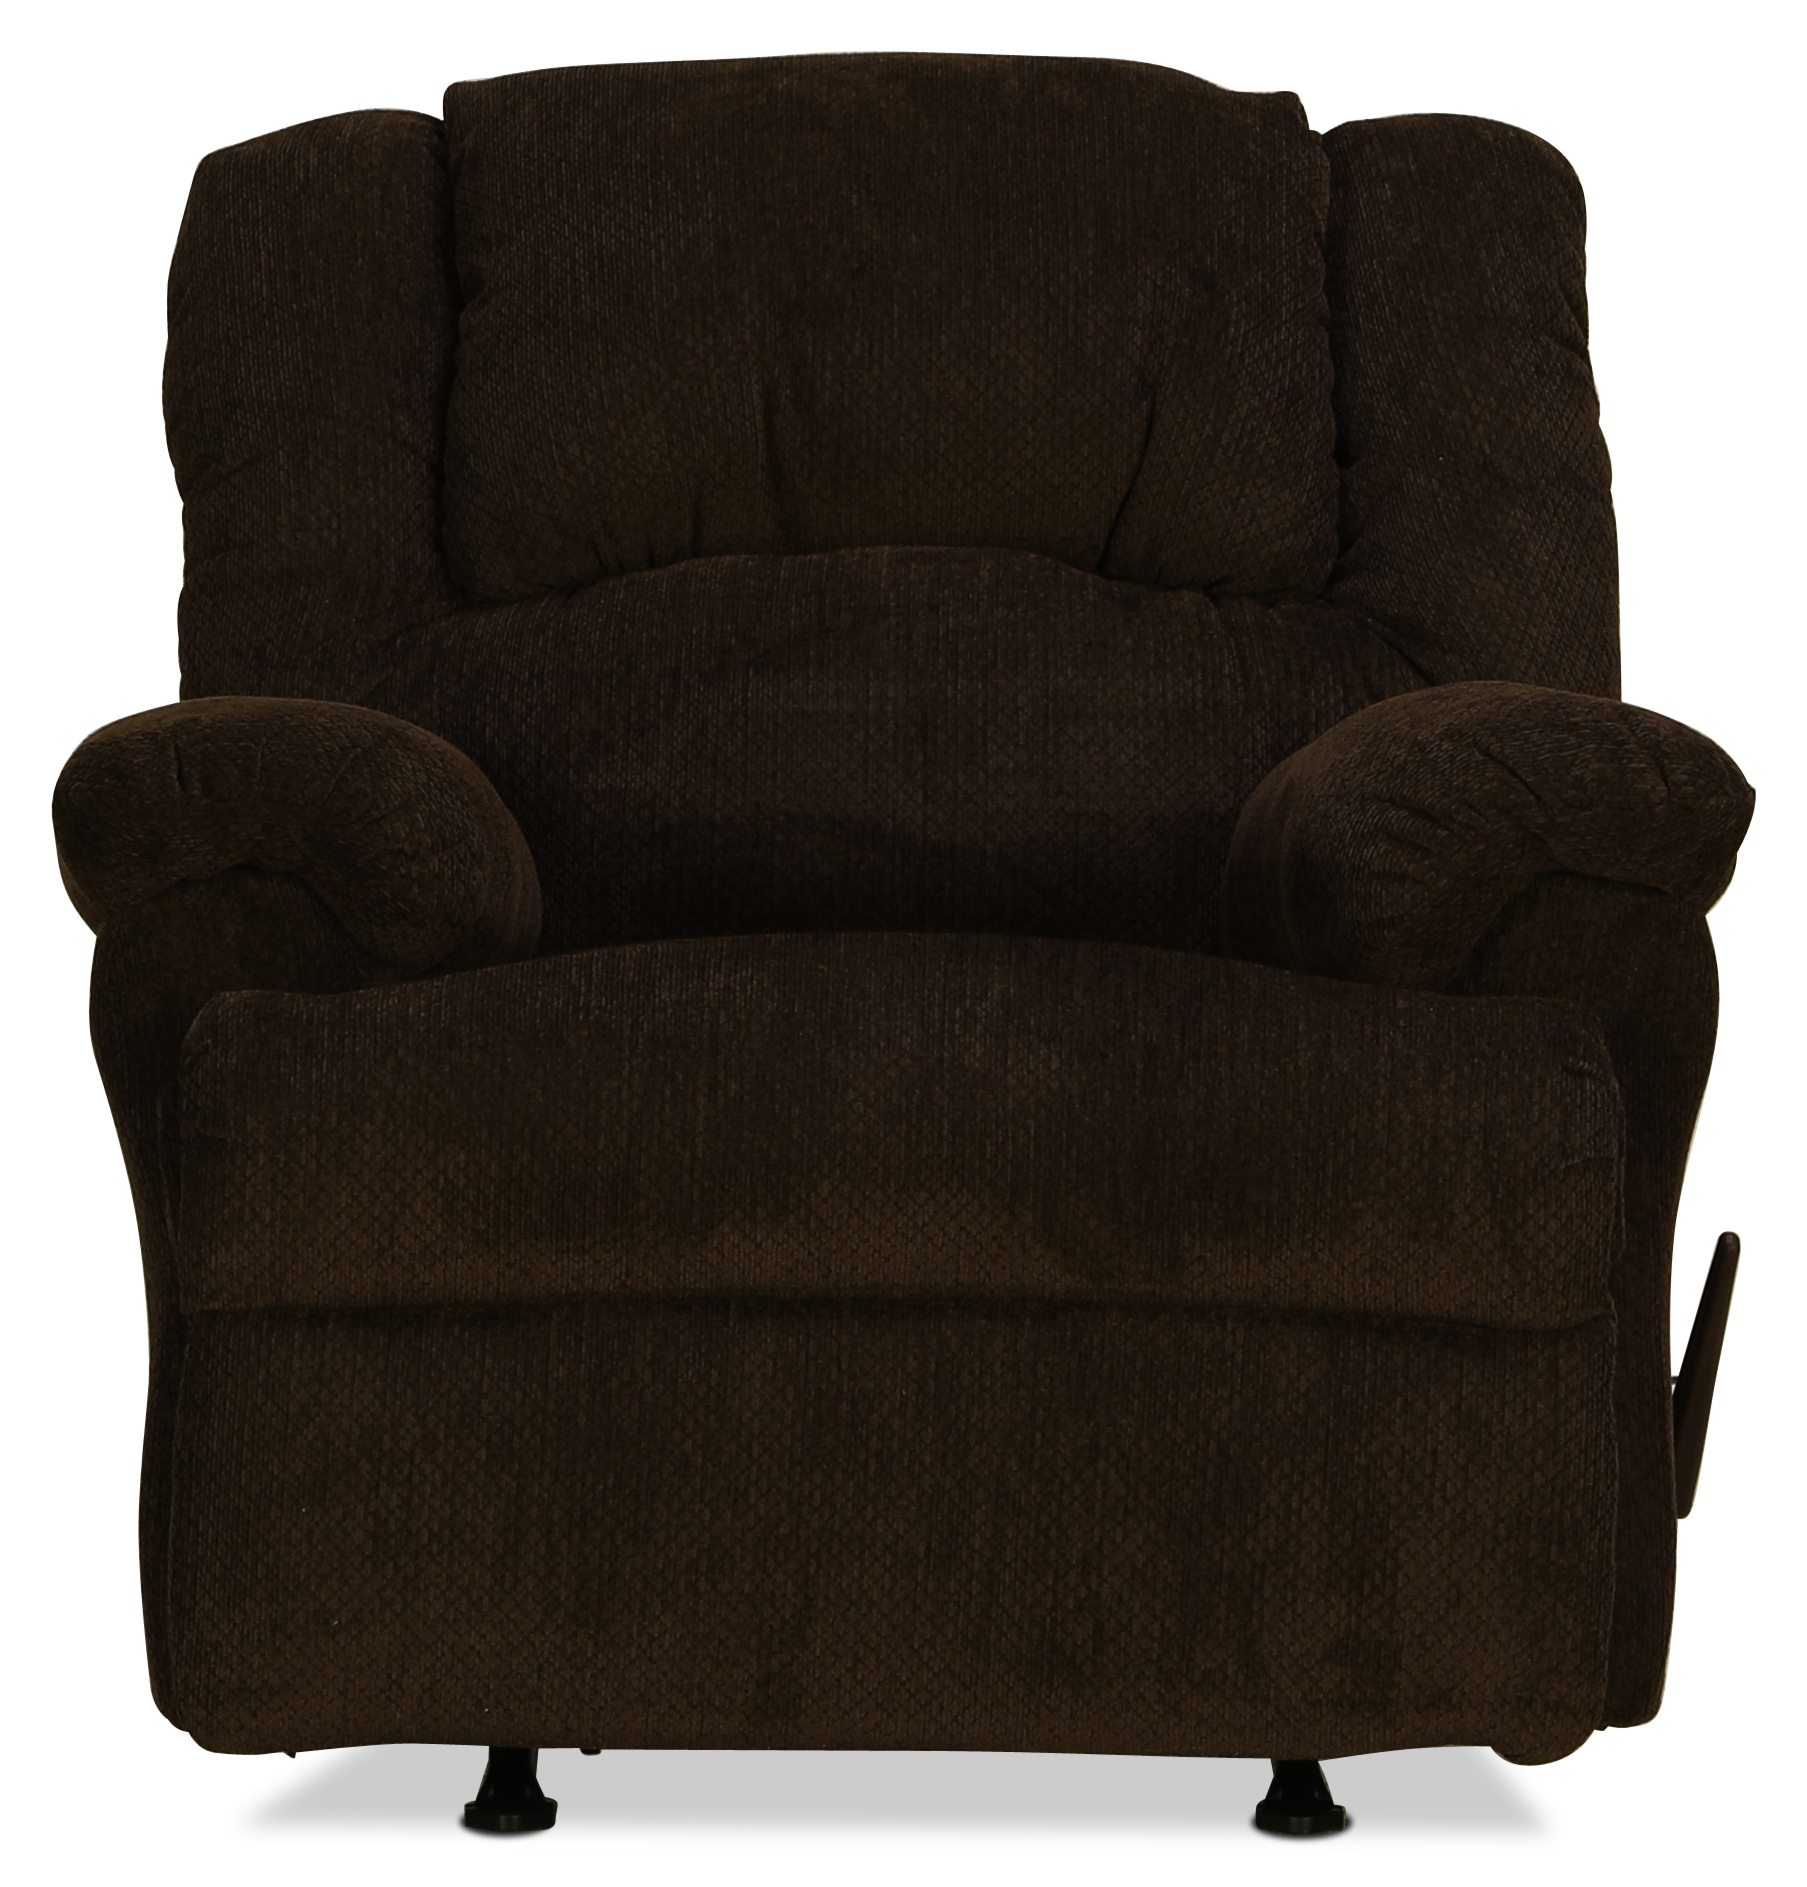 Intended For Trendy Decker Ii Fabric Swivel Glider Recliners (Gallery 7 of 20)